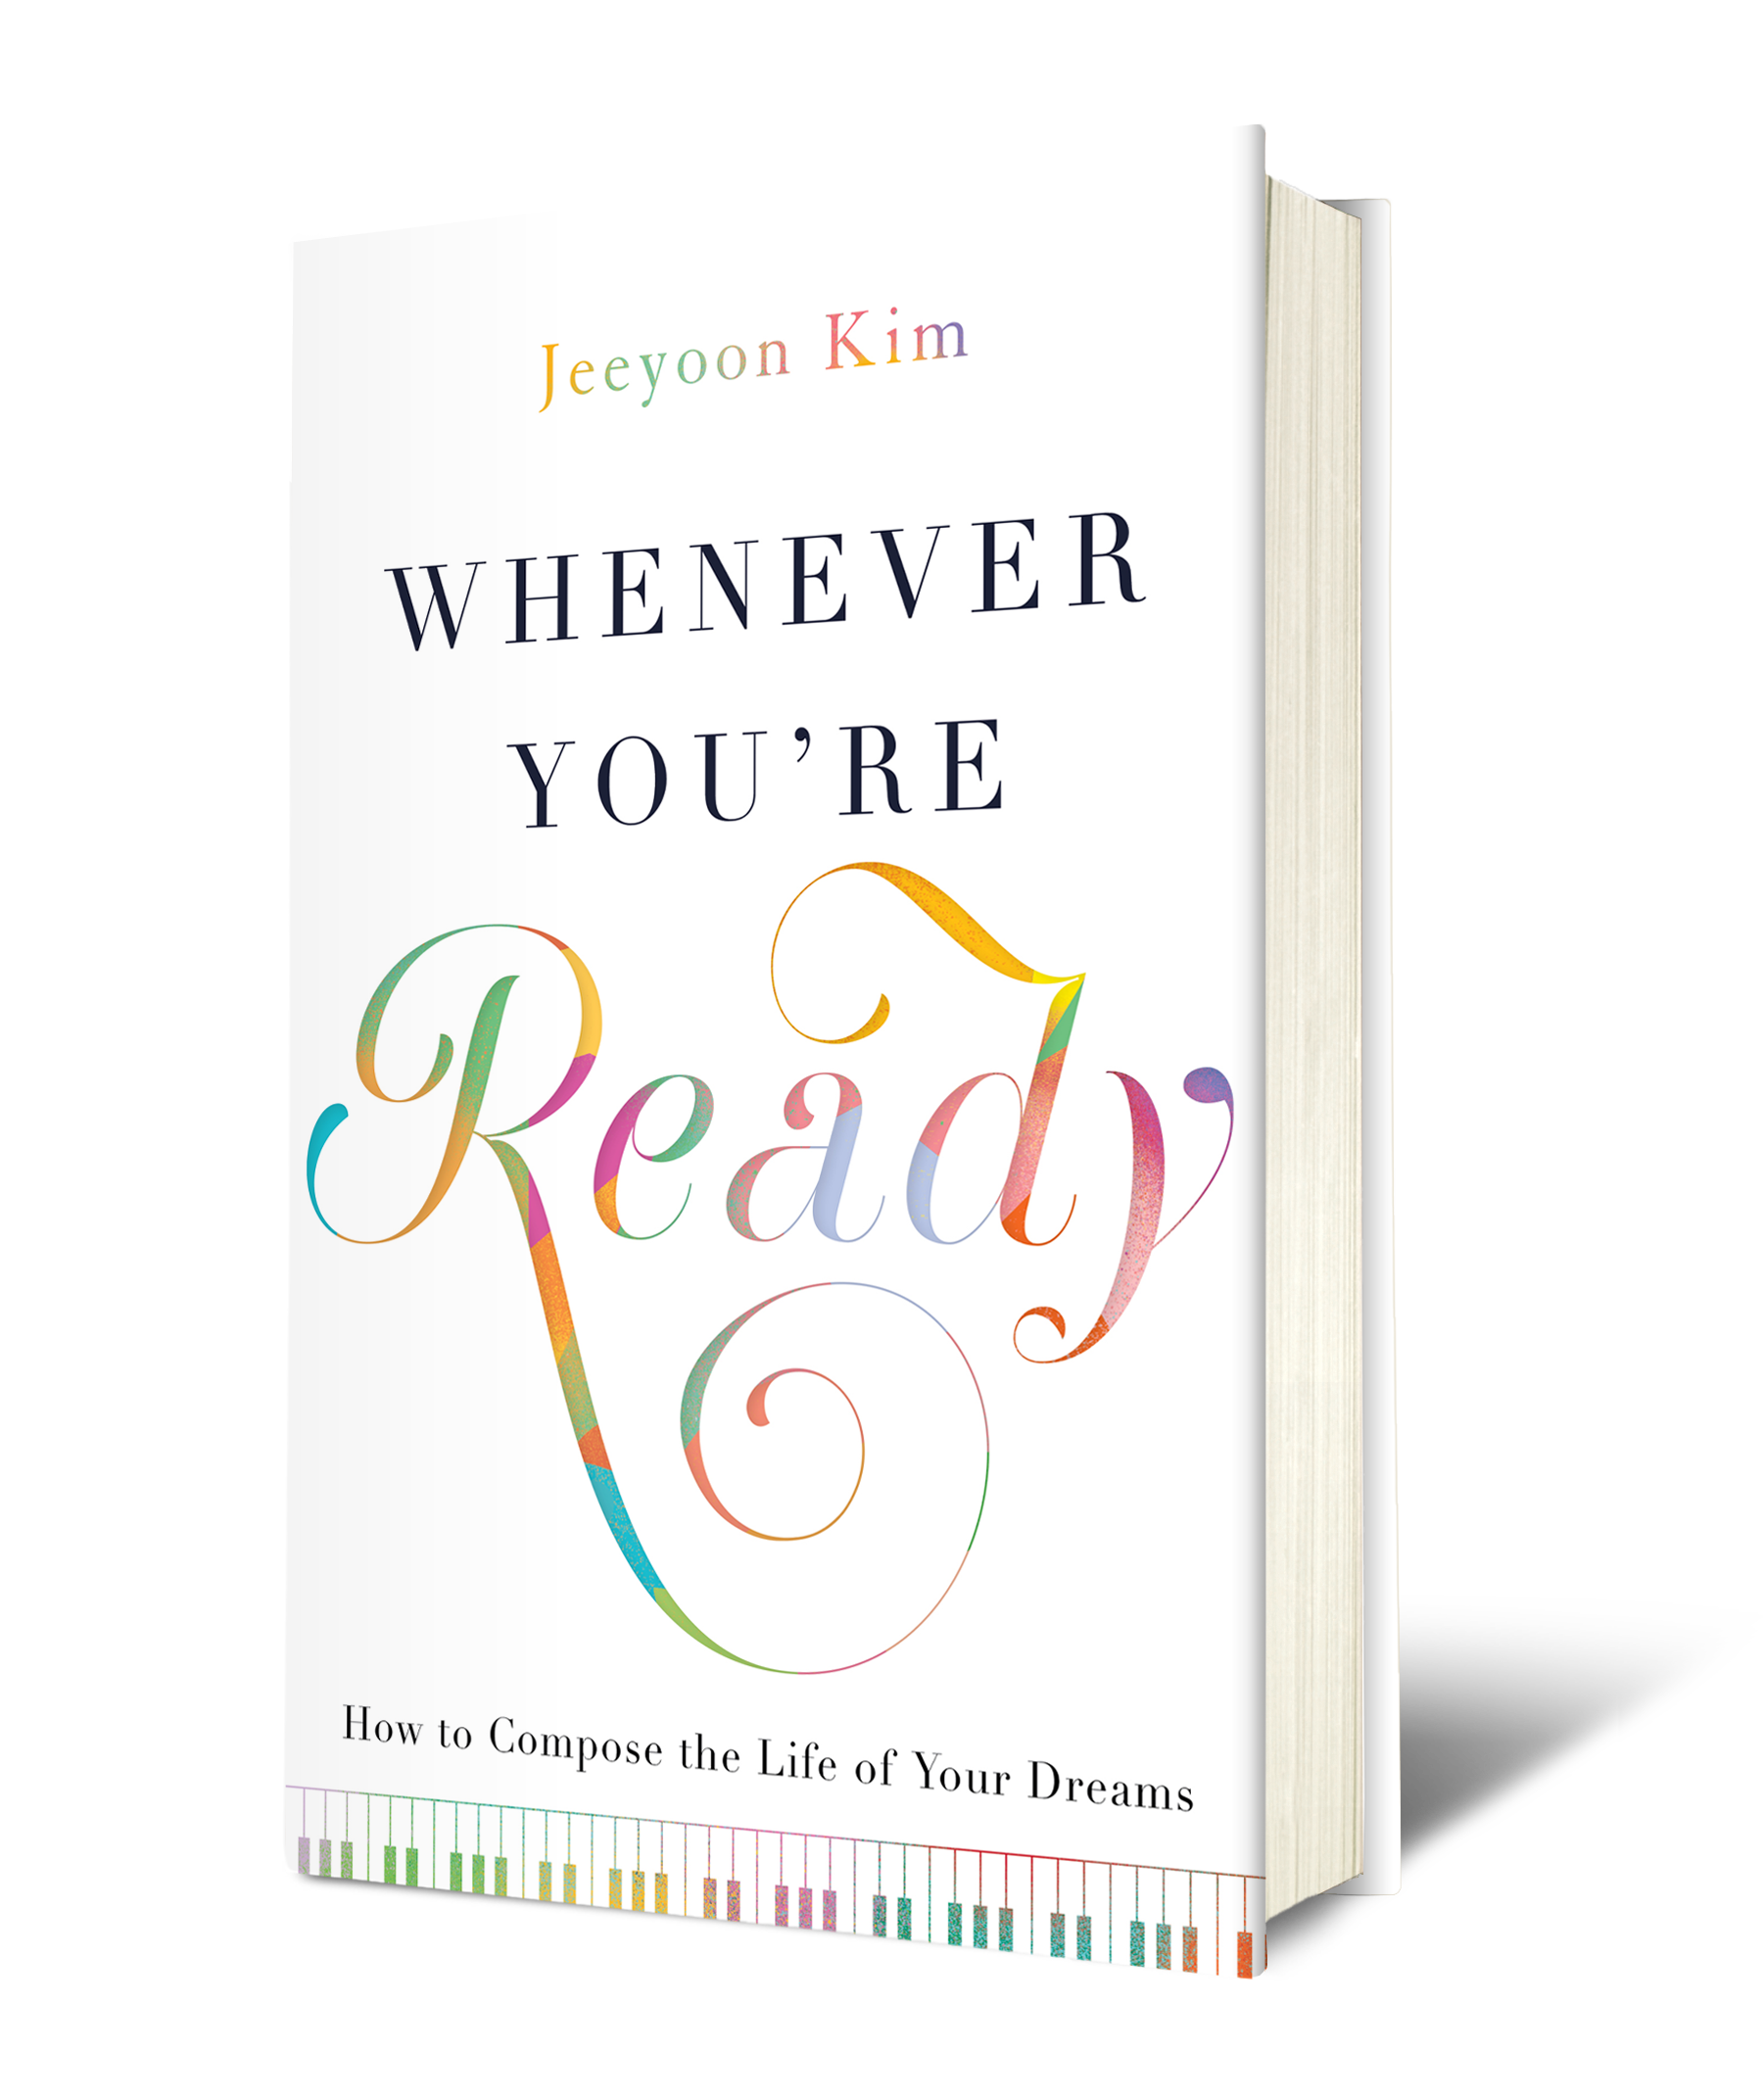 Jeenyoon Kim discusses her new book with Pastimes for a Lifetime